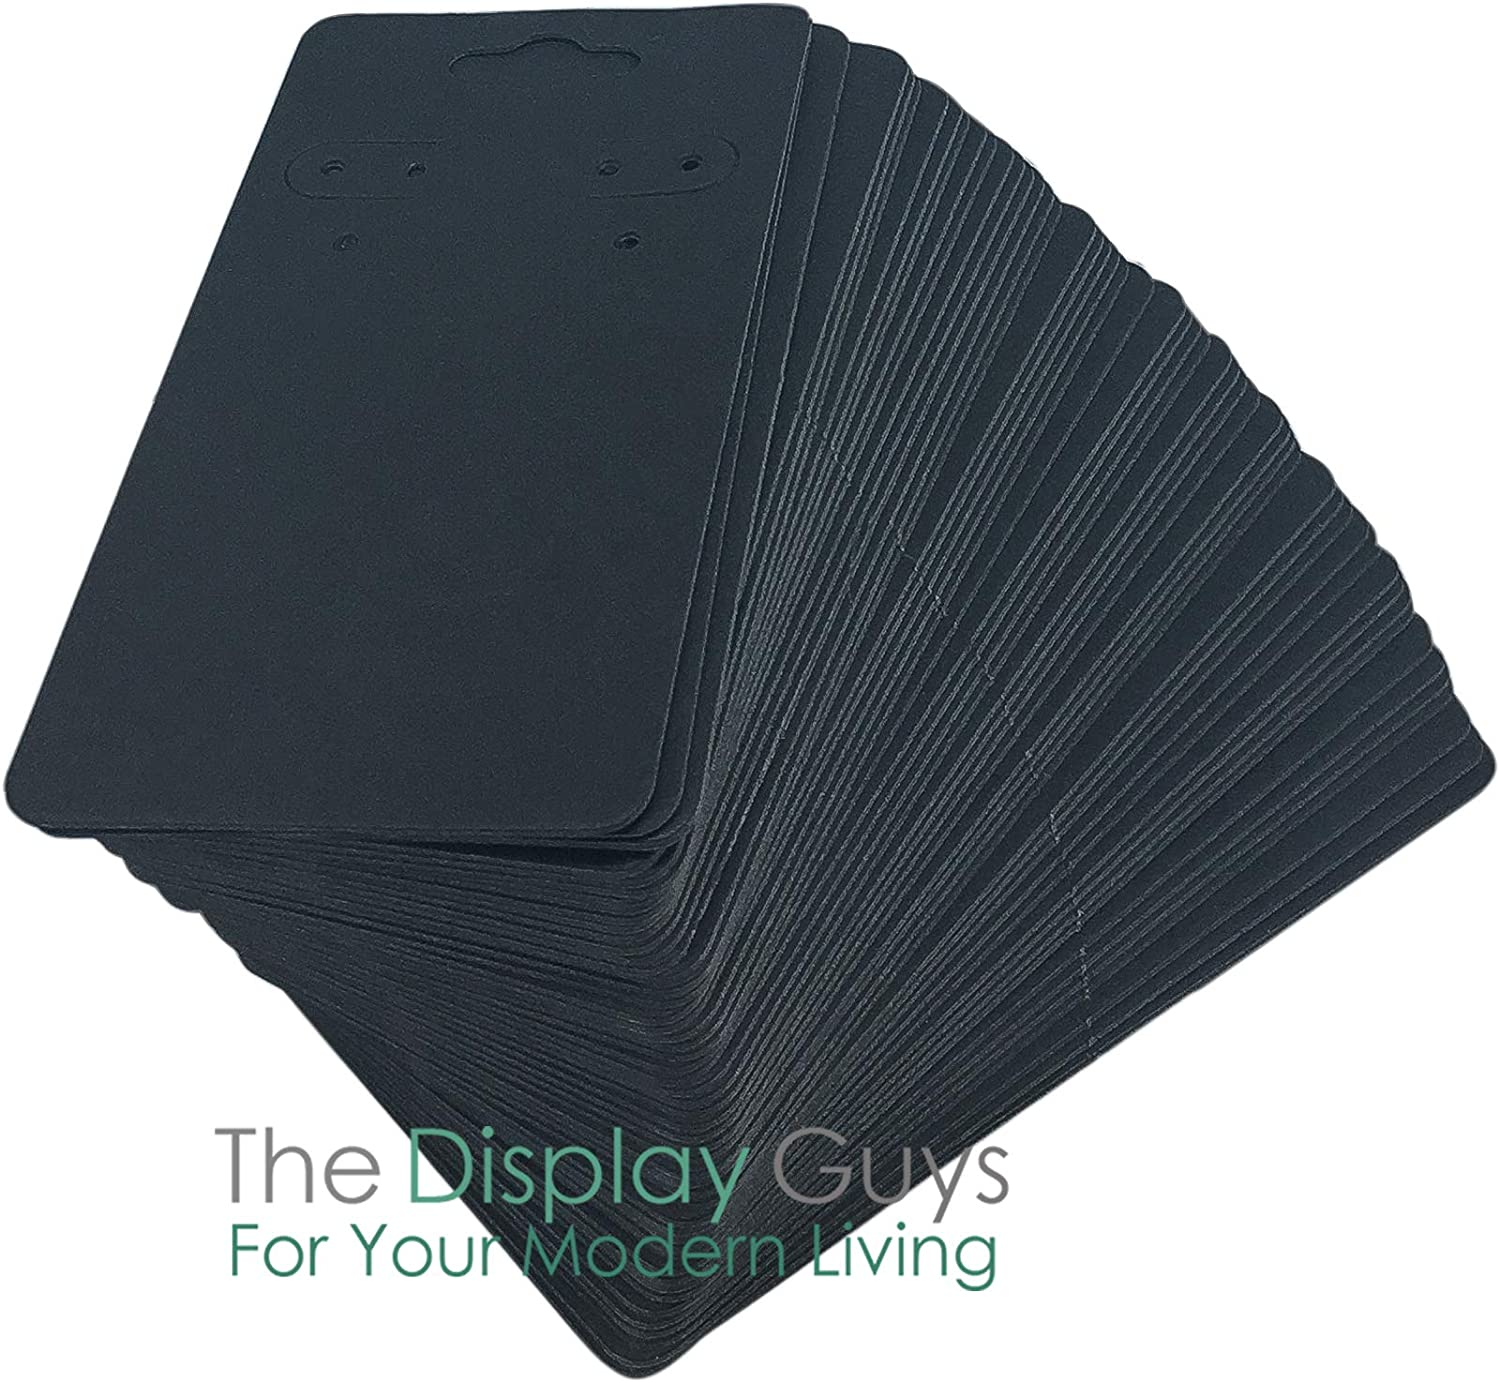 The Display Guys Pack of 100 pcs 2x2 inch 5x5 cm Matte Black Paper Necklace Earrings Display Hanging Cards for Jewelry Accessory Display